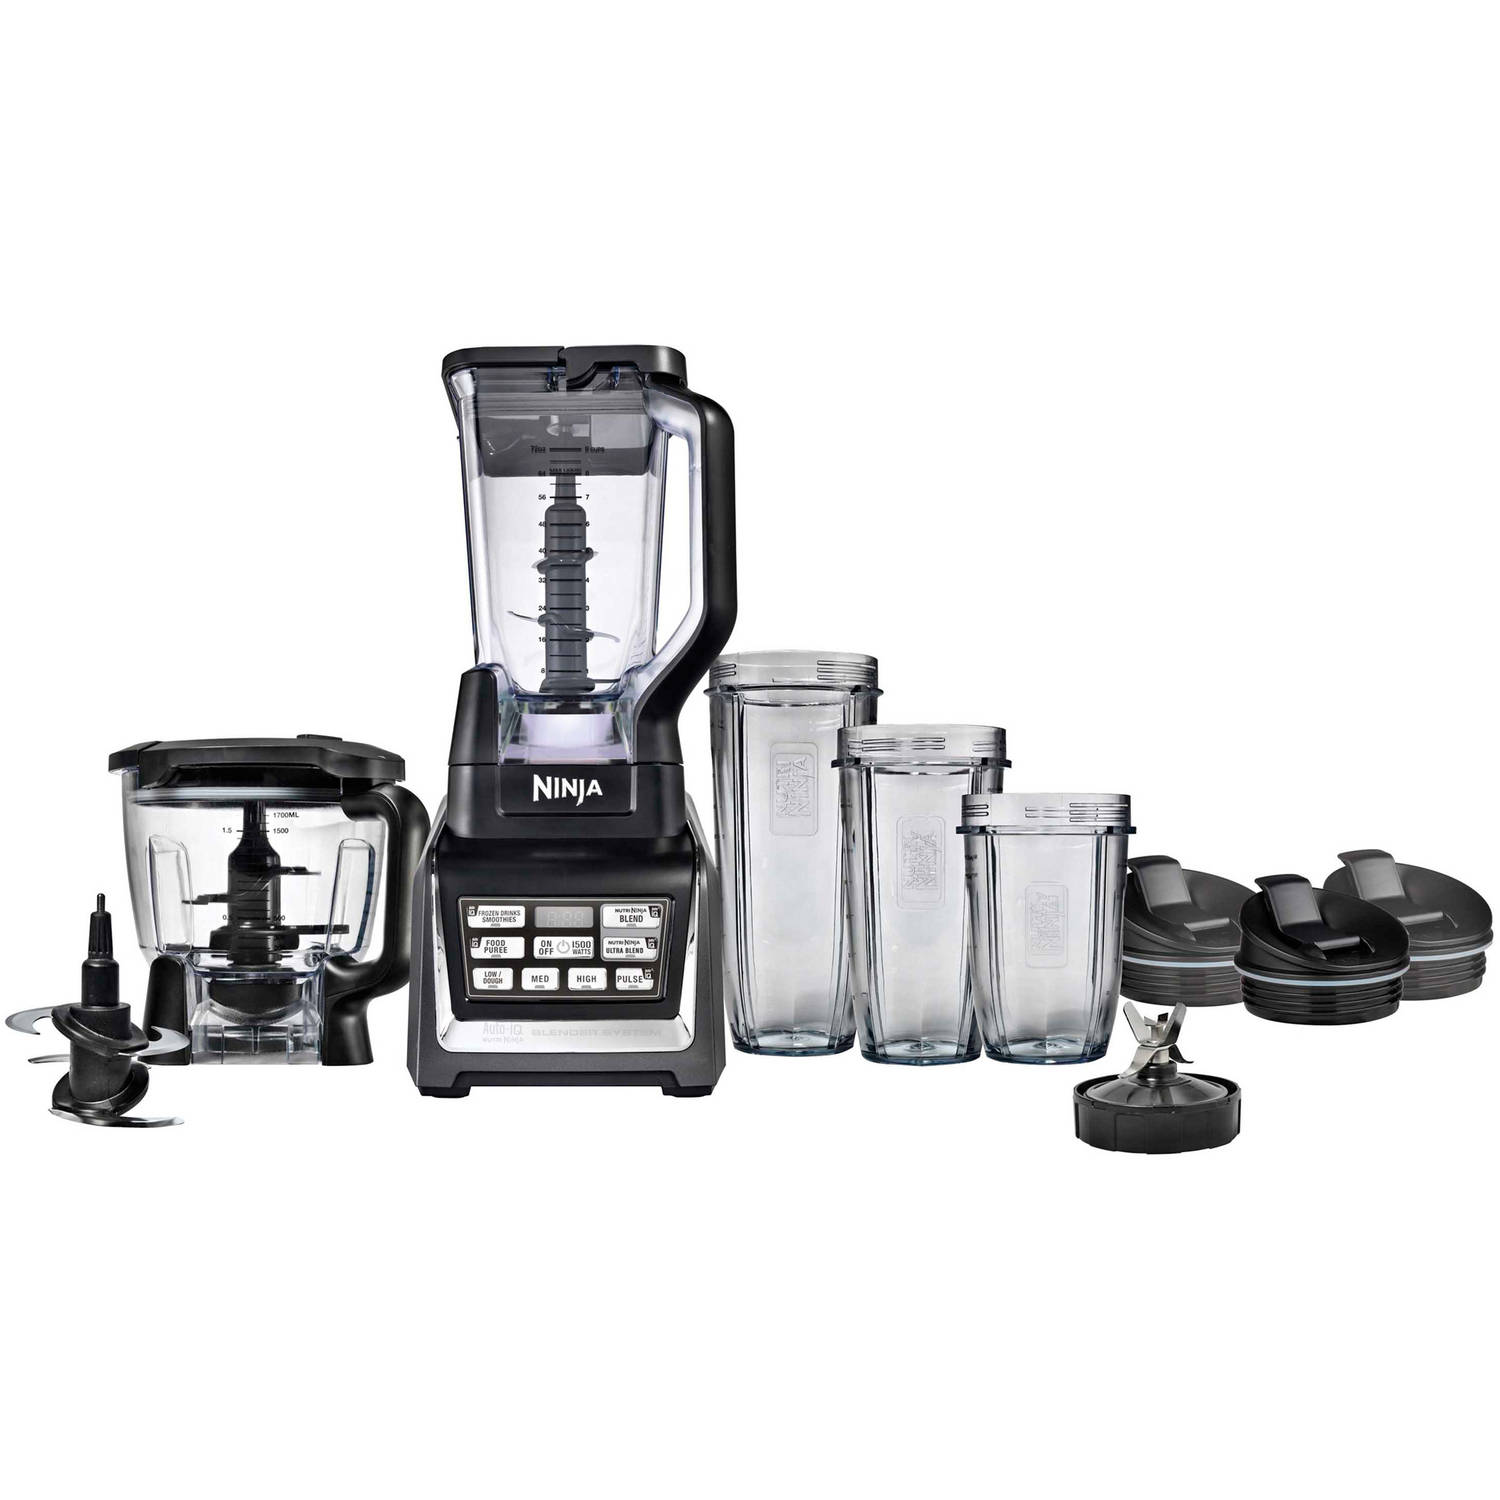 Nutri ninja blender system with auto iq technology - Nutri Ninja Blender System With Auto Iq Technology 21